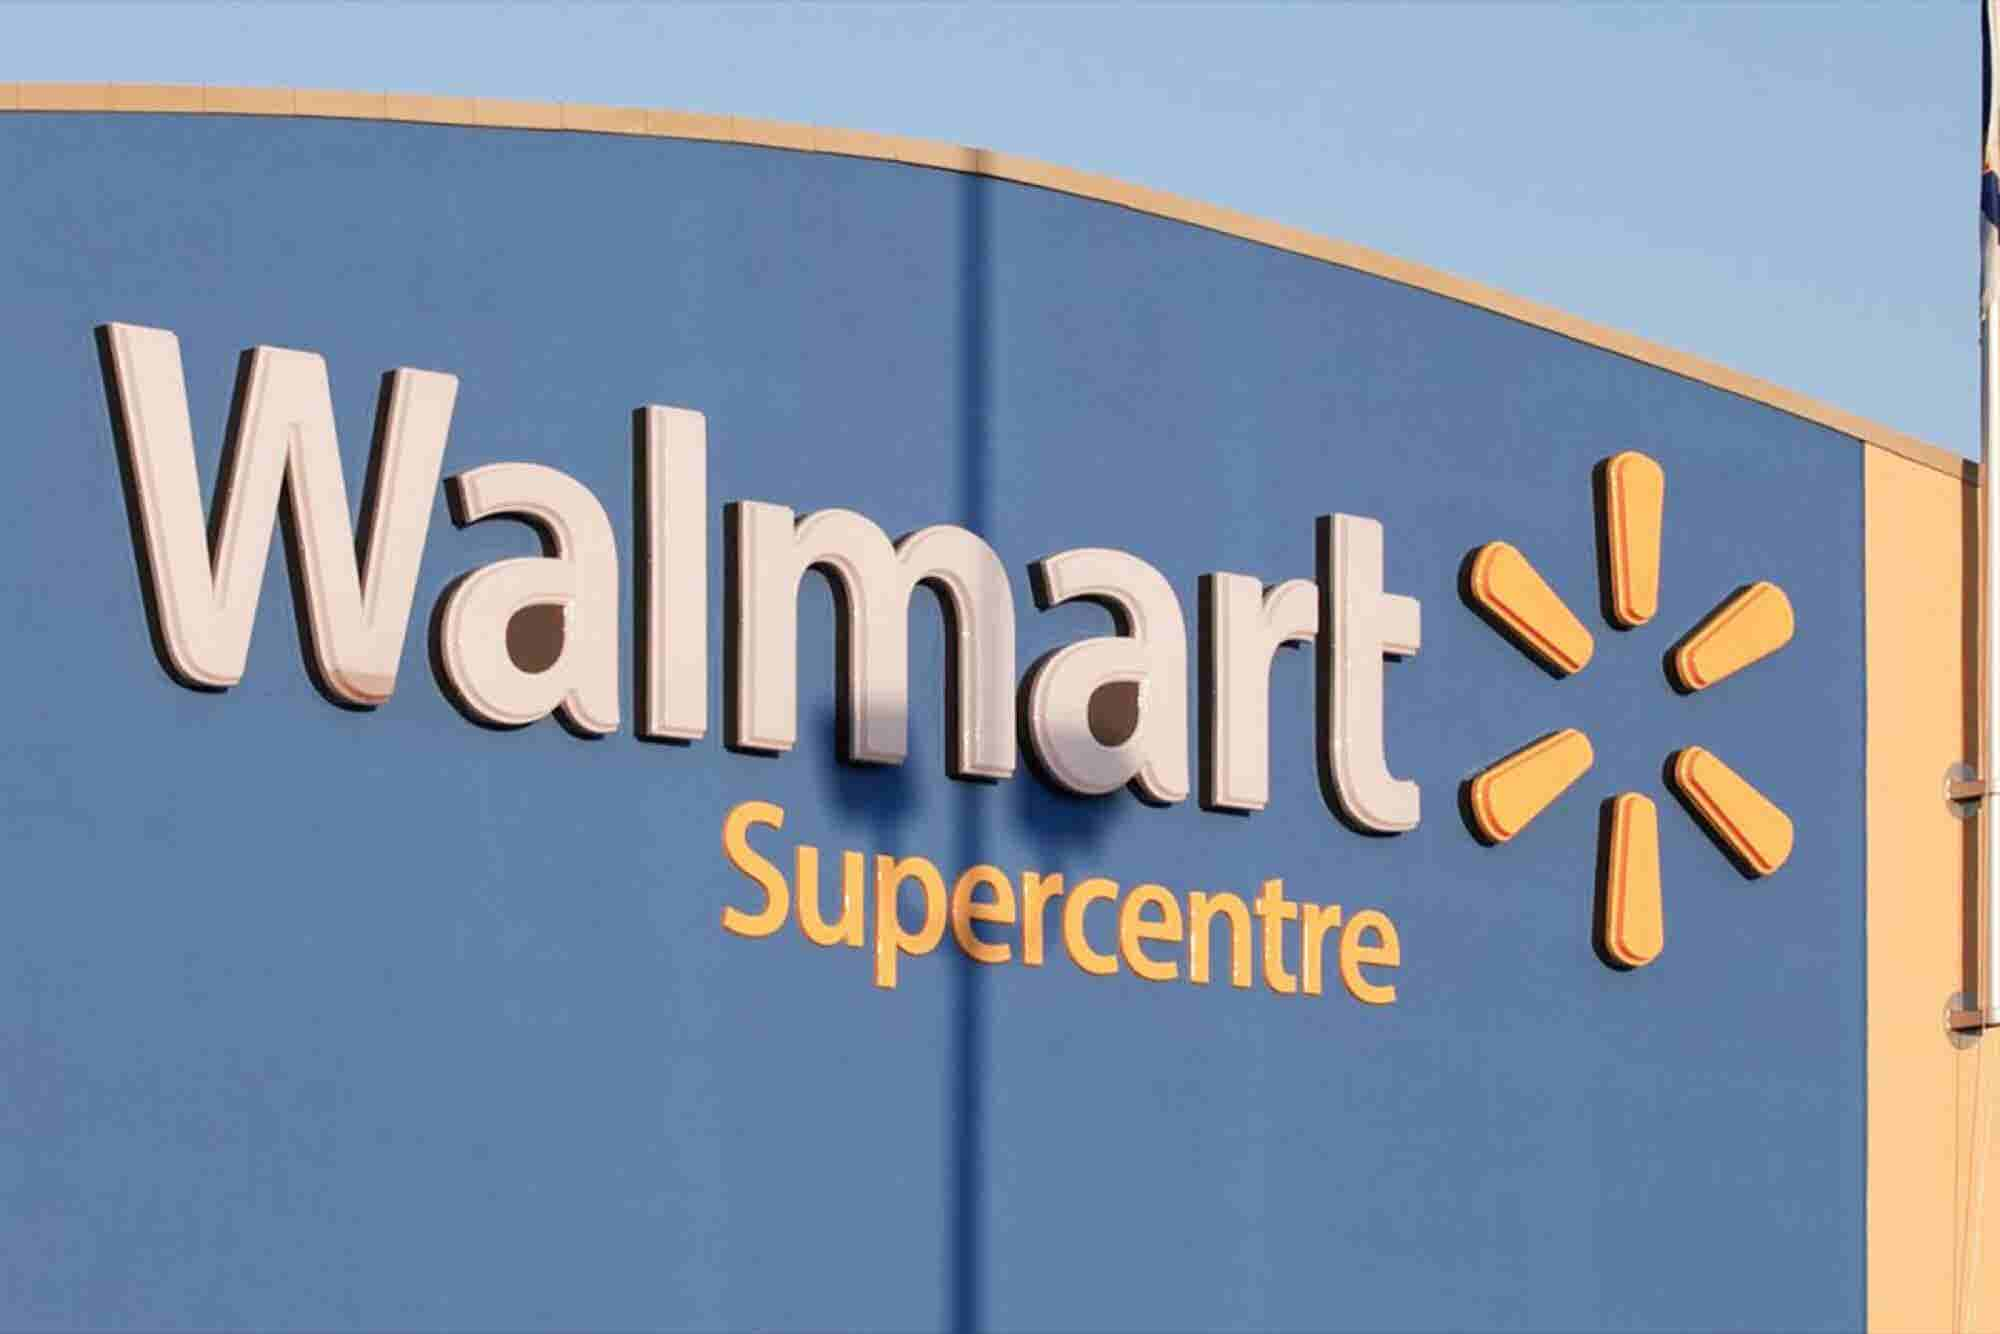 Wal-Mart Eats Humble Pie After Publishing 'Fat Girl' Halloween Costumes